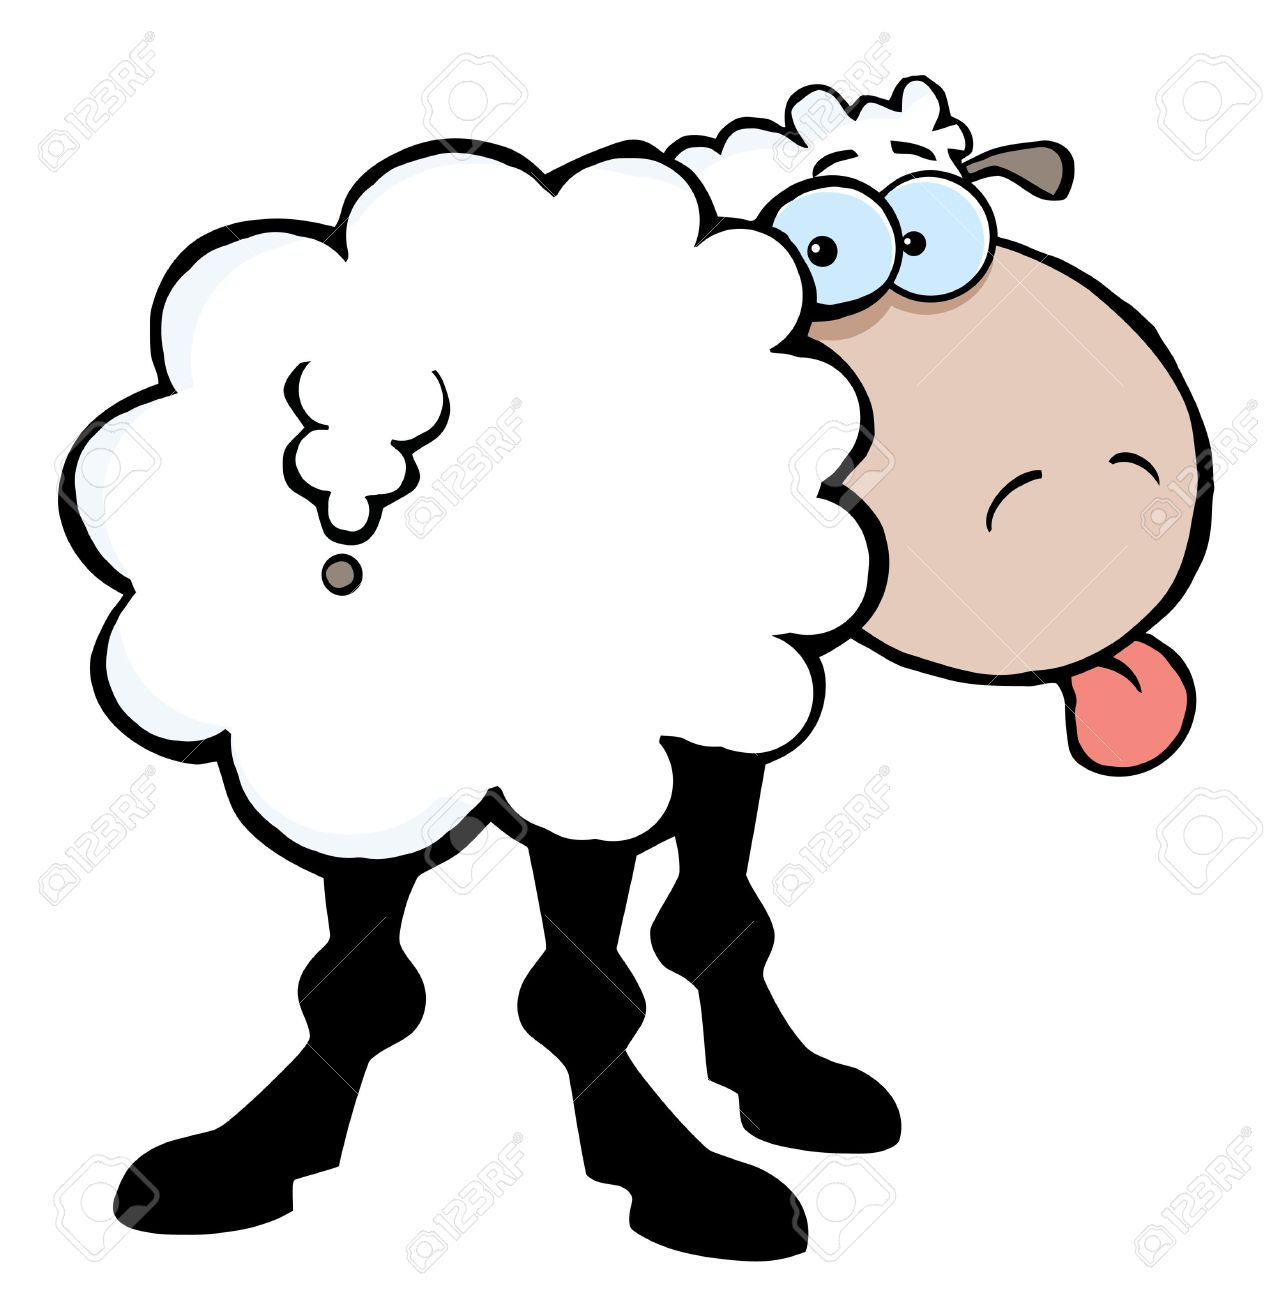 Funky Sheep Sticking Out His Tongue Stock Photo, Picture And.